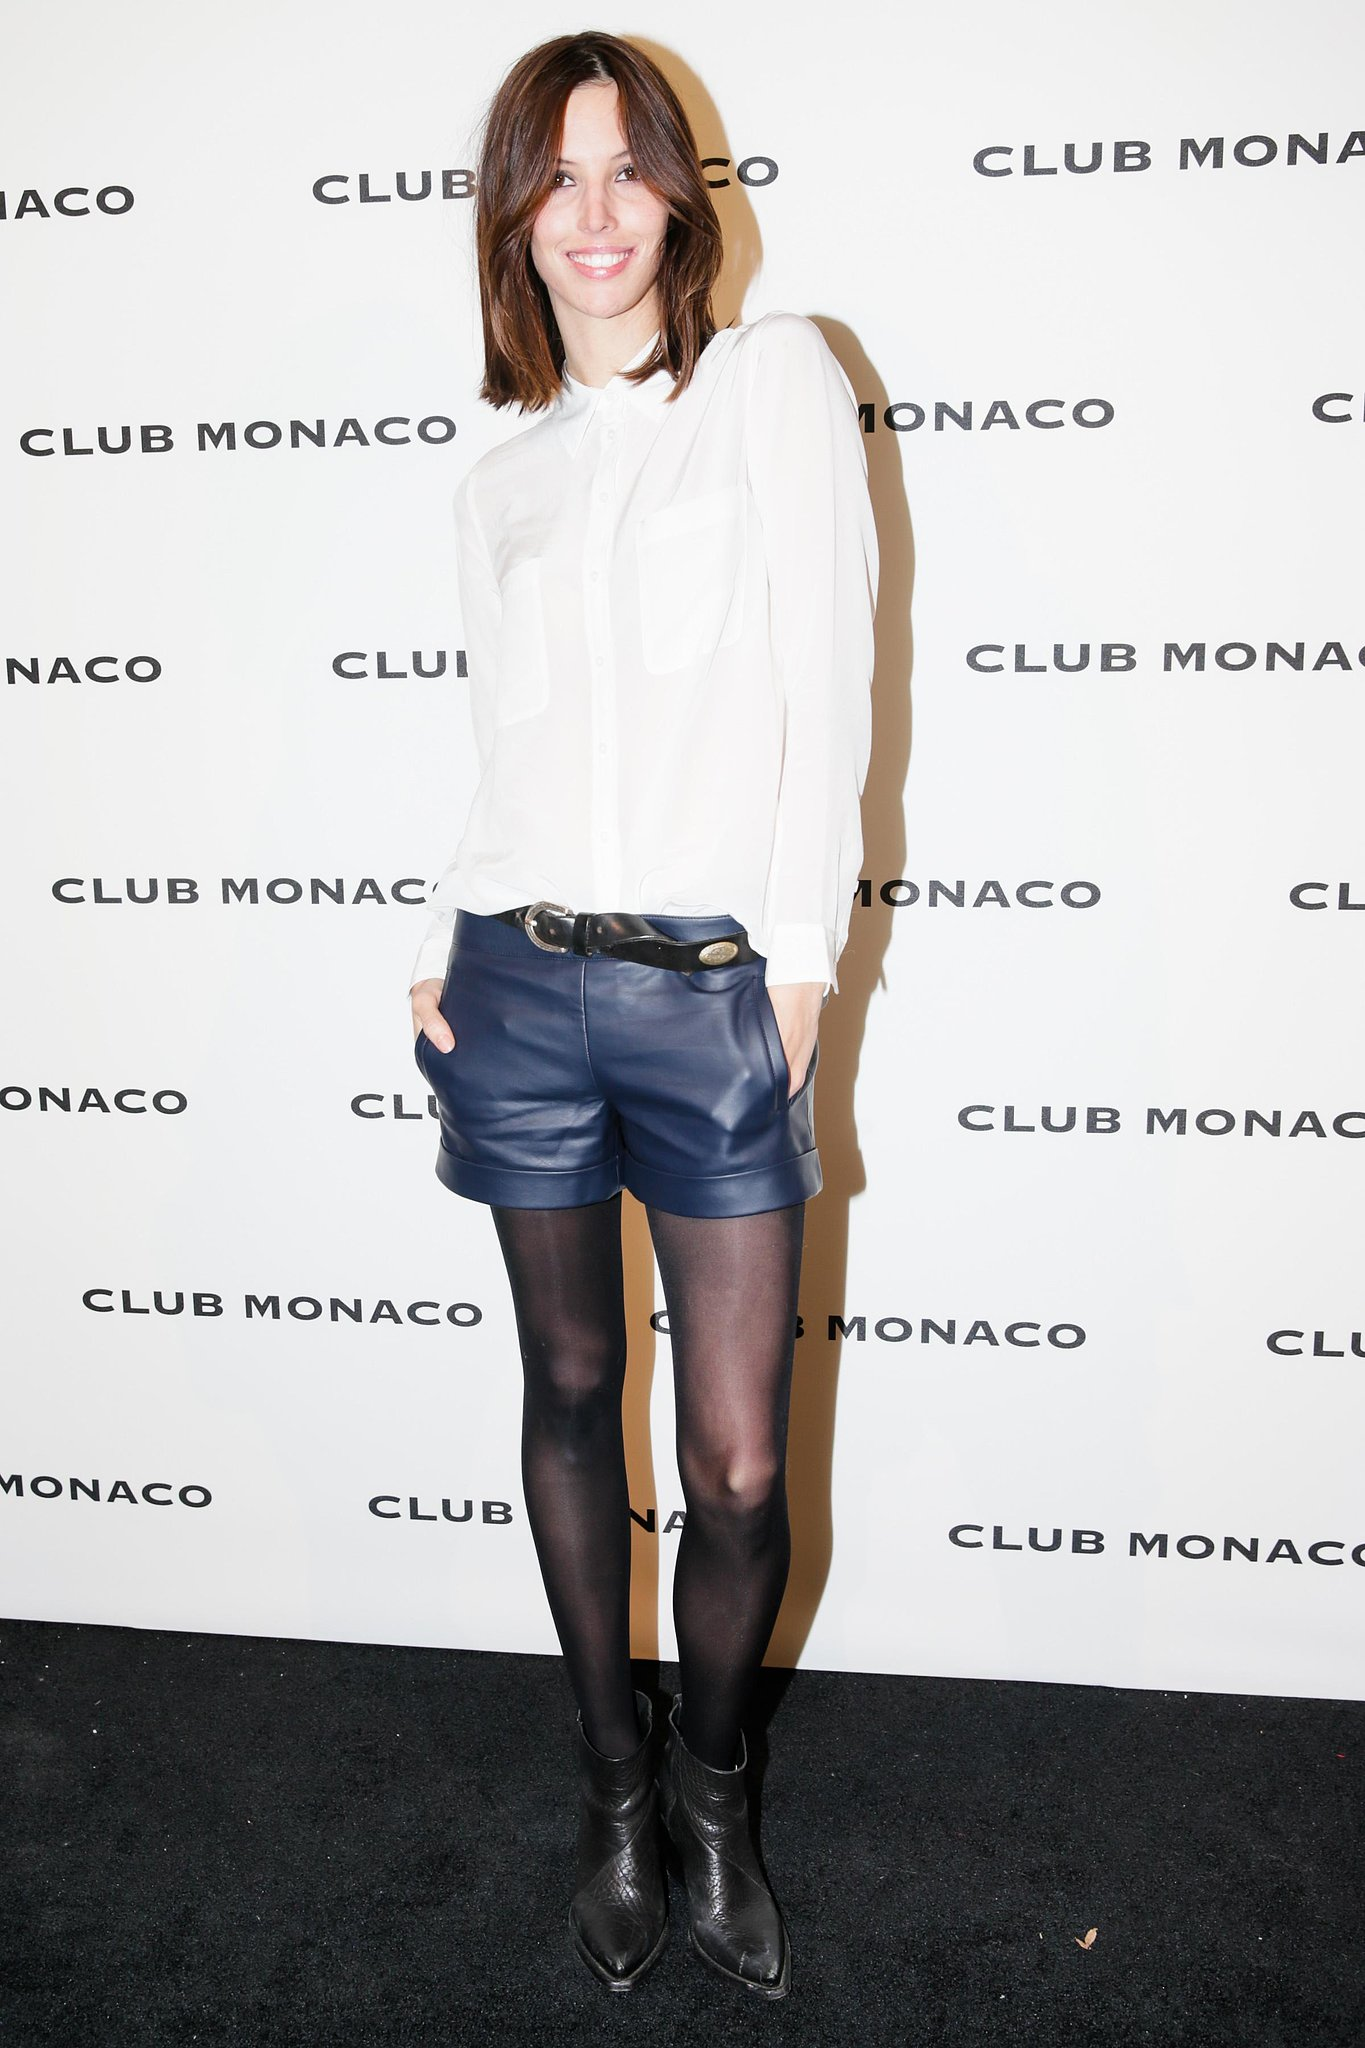 Ruby Aldridge worked her gams in leather shorts outside the Club Monaco bash.